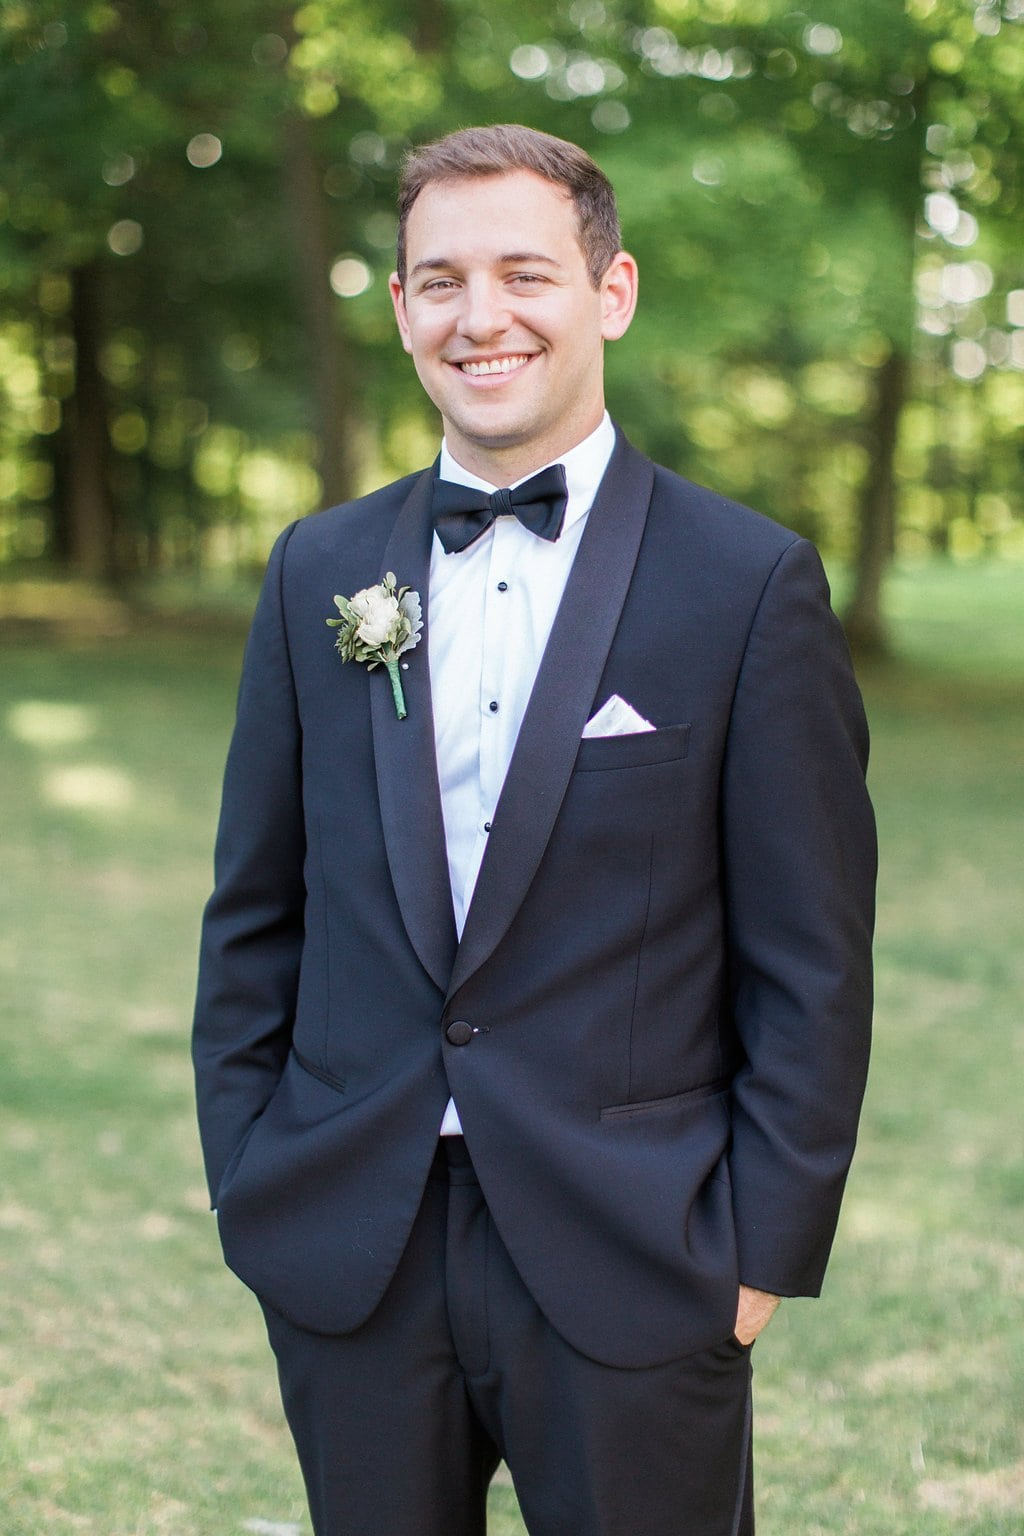 portrait of groom wearing a tux on his wedding day